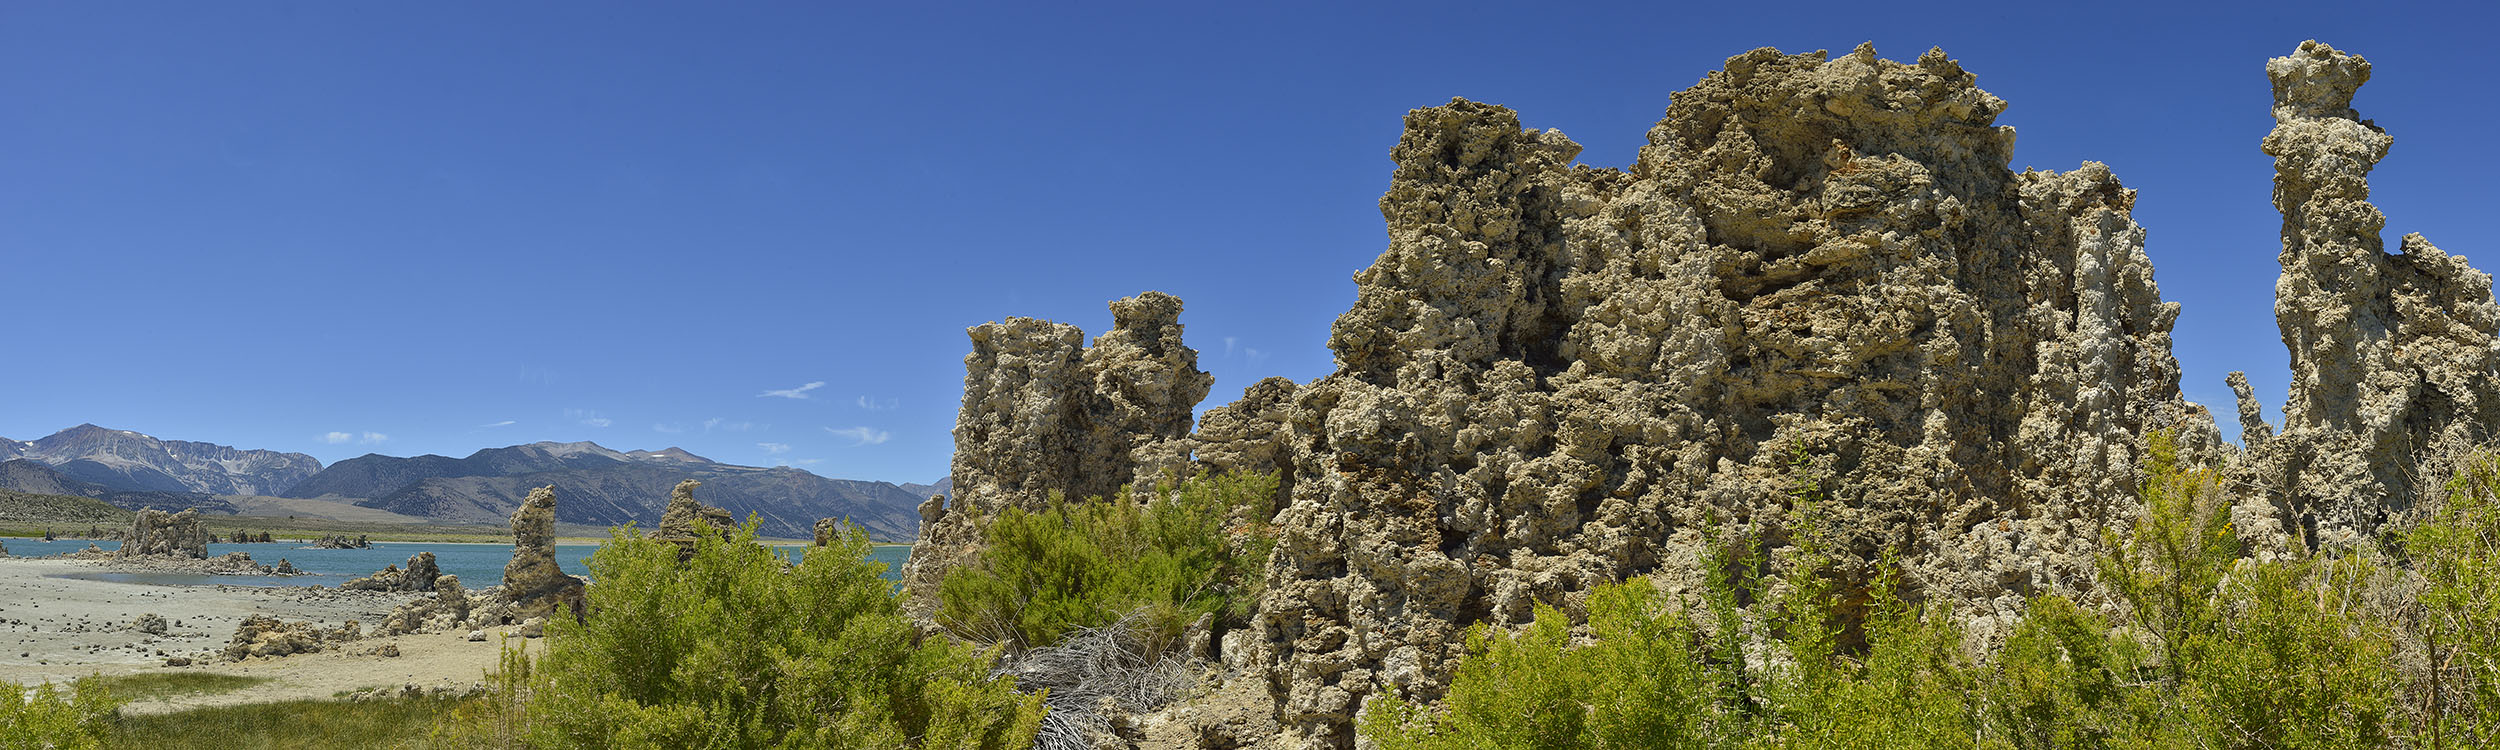 Tufas in Southern Mono Lake